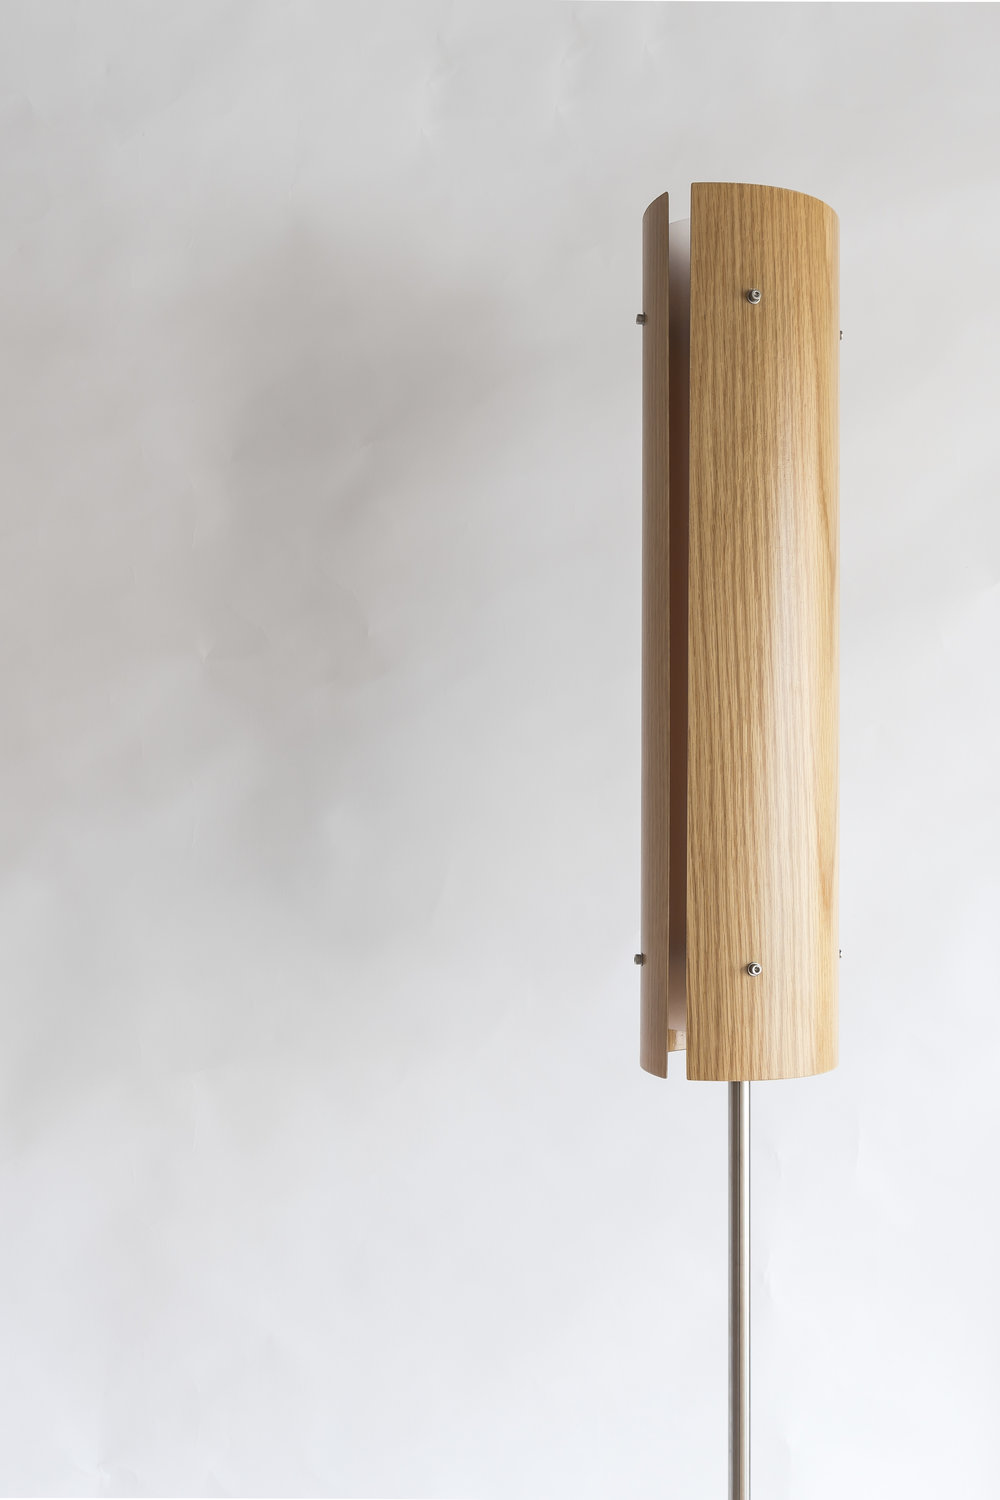 Ra 2 EX Standard lamp Materials: Oak / Macrocarpa / Custom - Stainless stand Size: 1800mm Light source: x2 LED bulbs Enquire for price Handcrafted in New Zealand